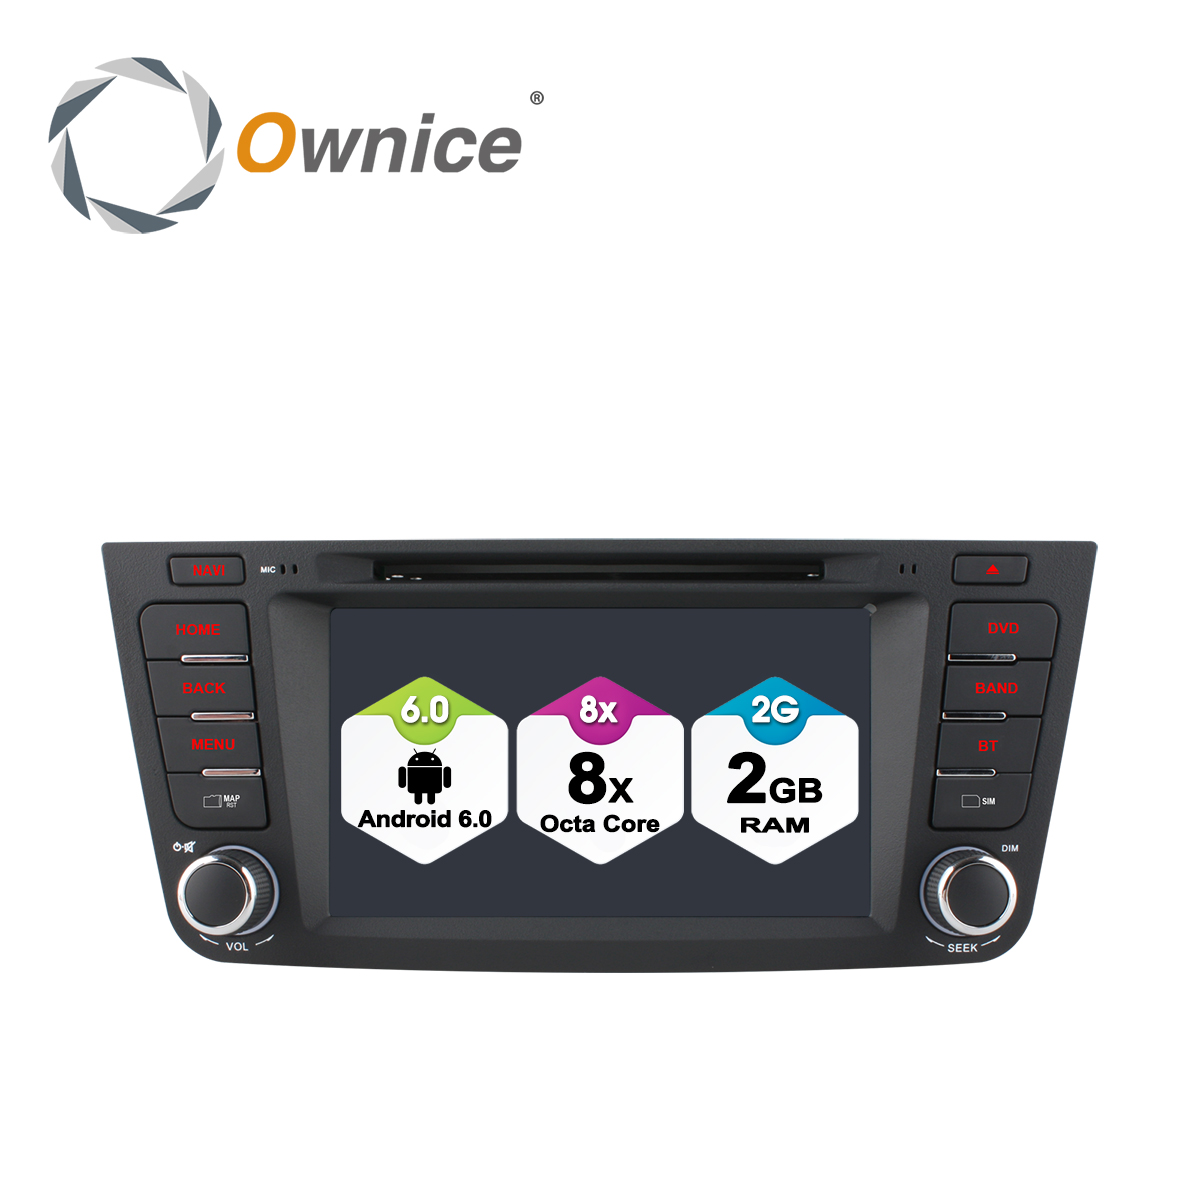 Ownice C500 Octa 8 Core Android 6.0 2 DIN Car DVD player For Geely Emgrand X7 EX7 GX7 with 1024*600 2GB RAM 32GB ROM support 4G